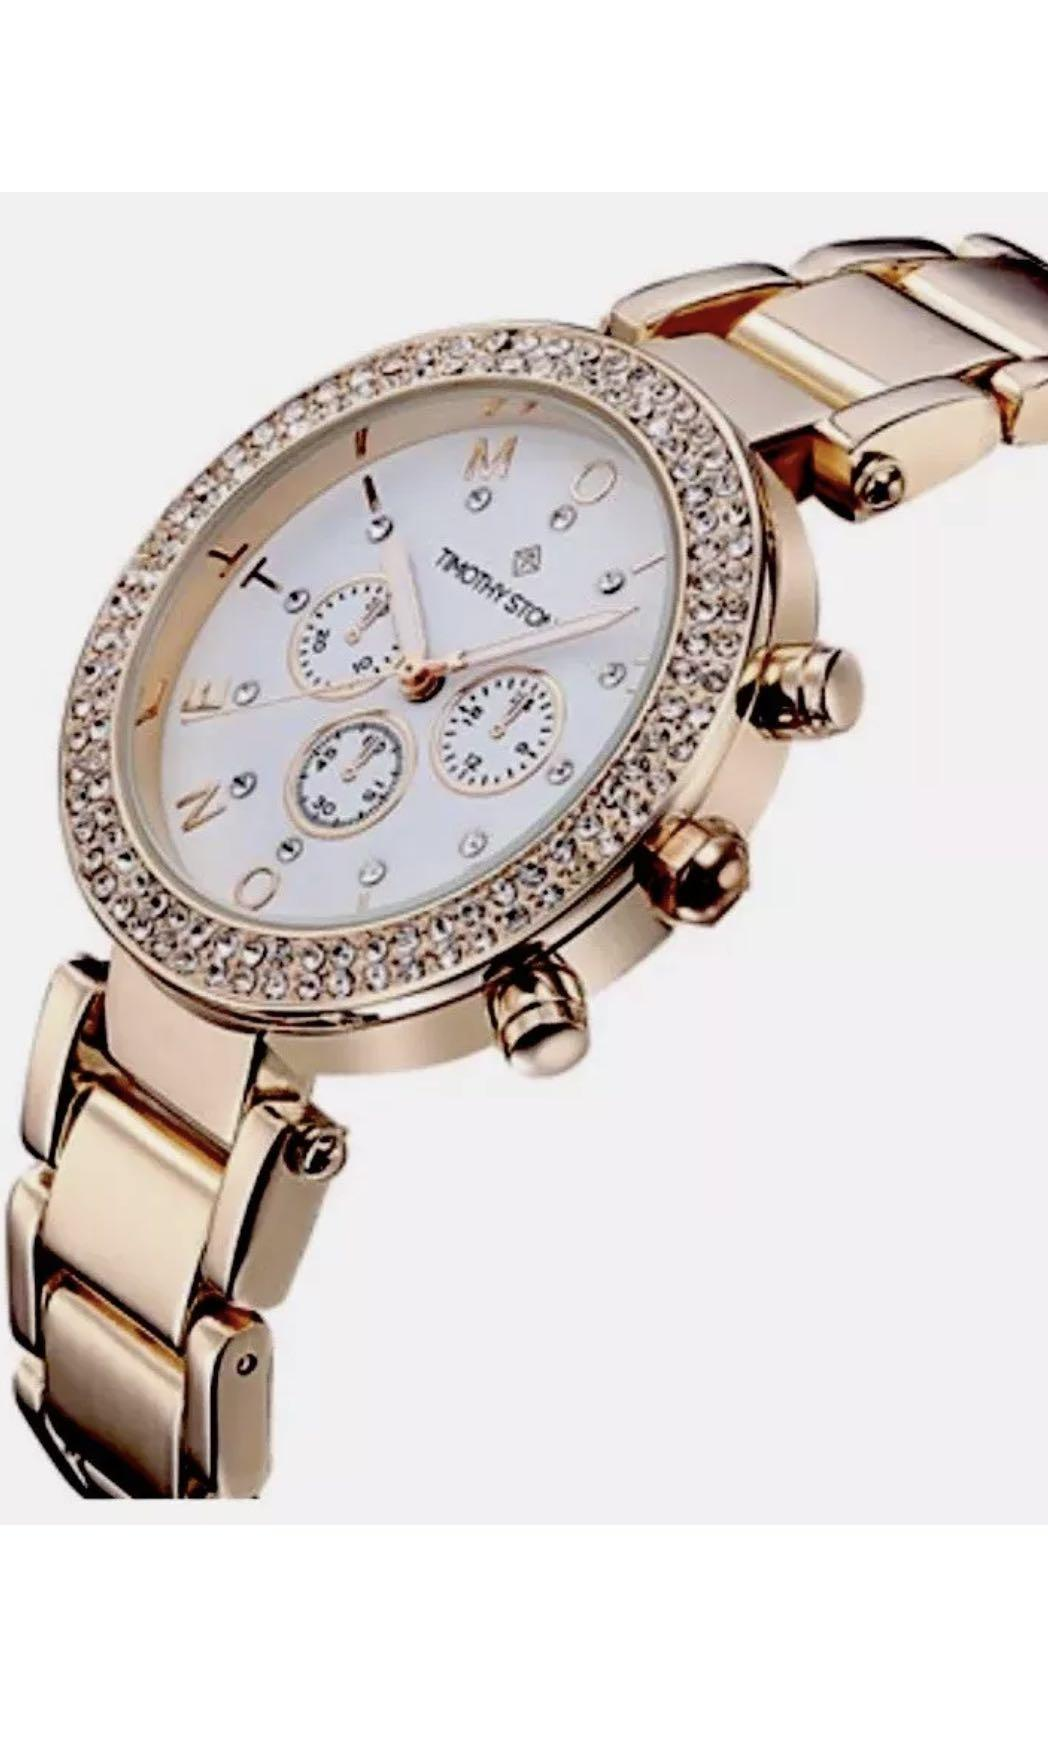 Ladies TIMOTHY STONE Desire Rose Gold Swarovski Watch. New $230